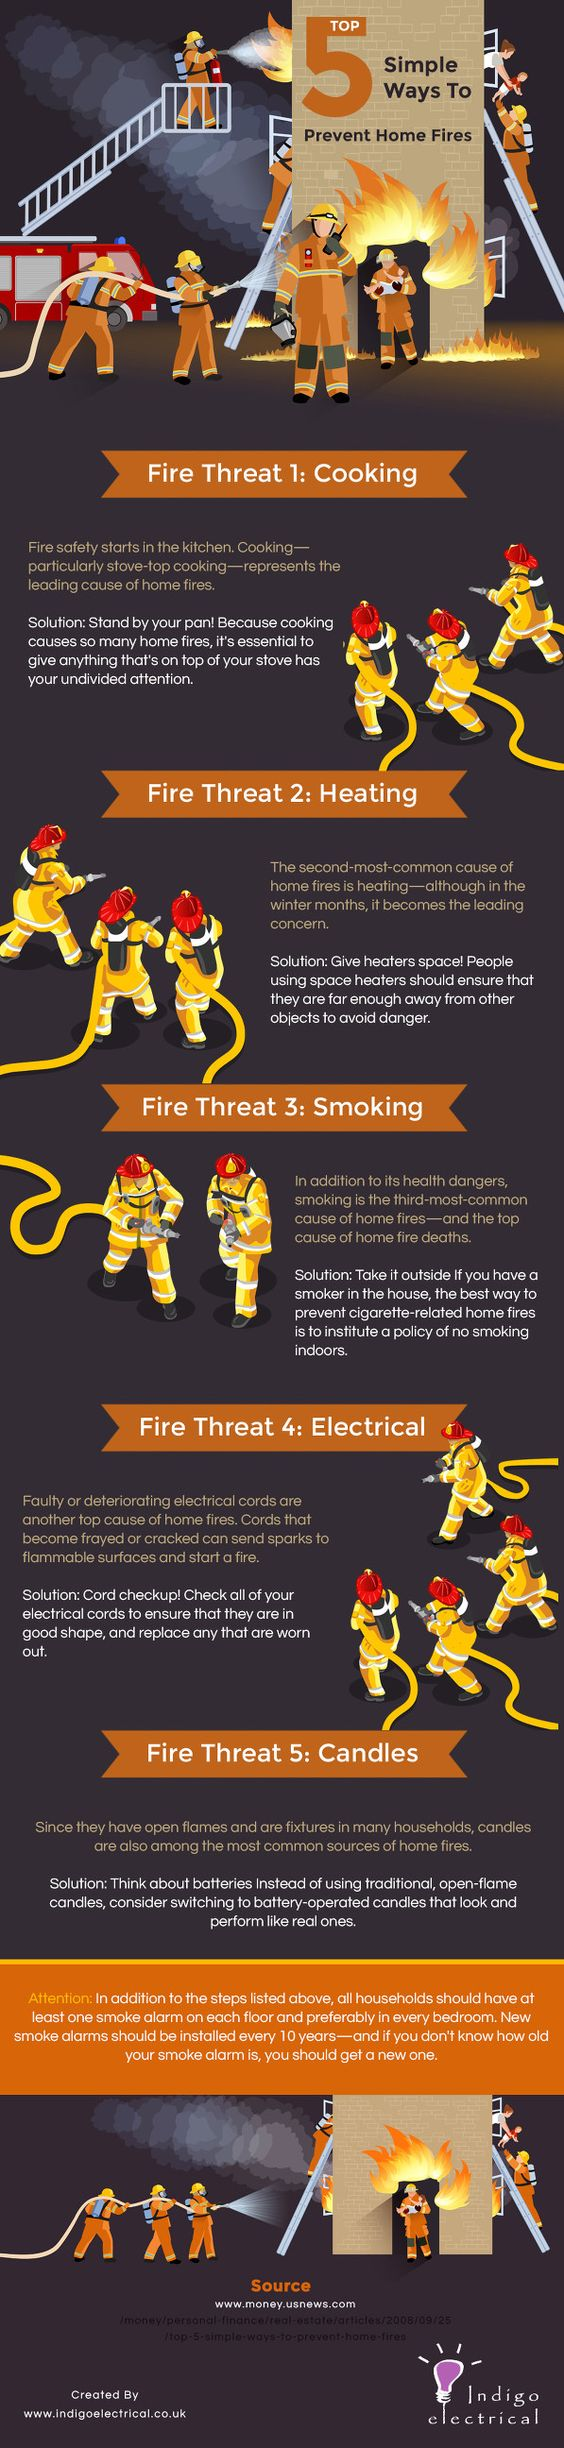 Top 5 Simple Ways to Prevent Home Fires #Infographic